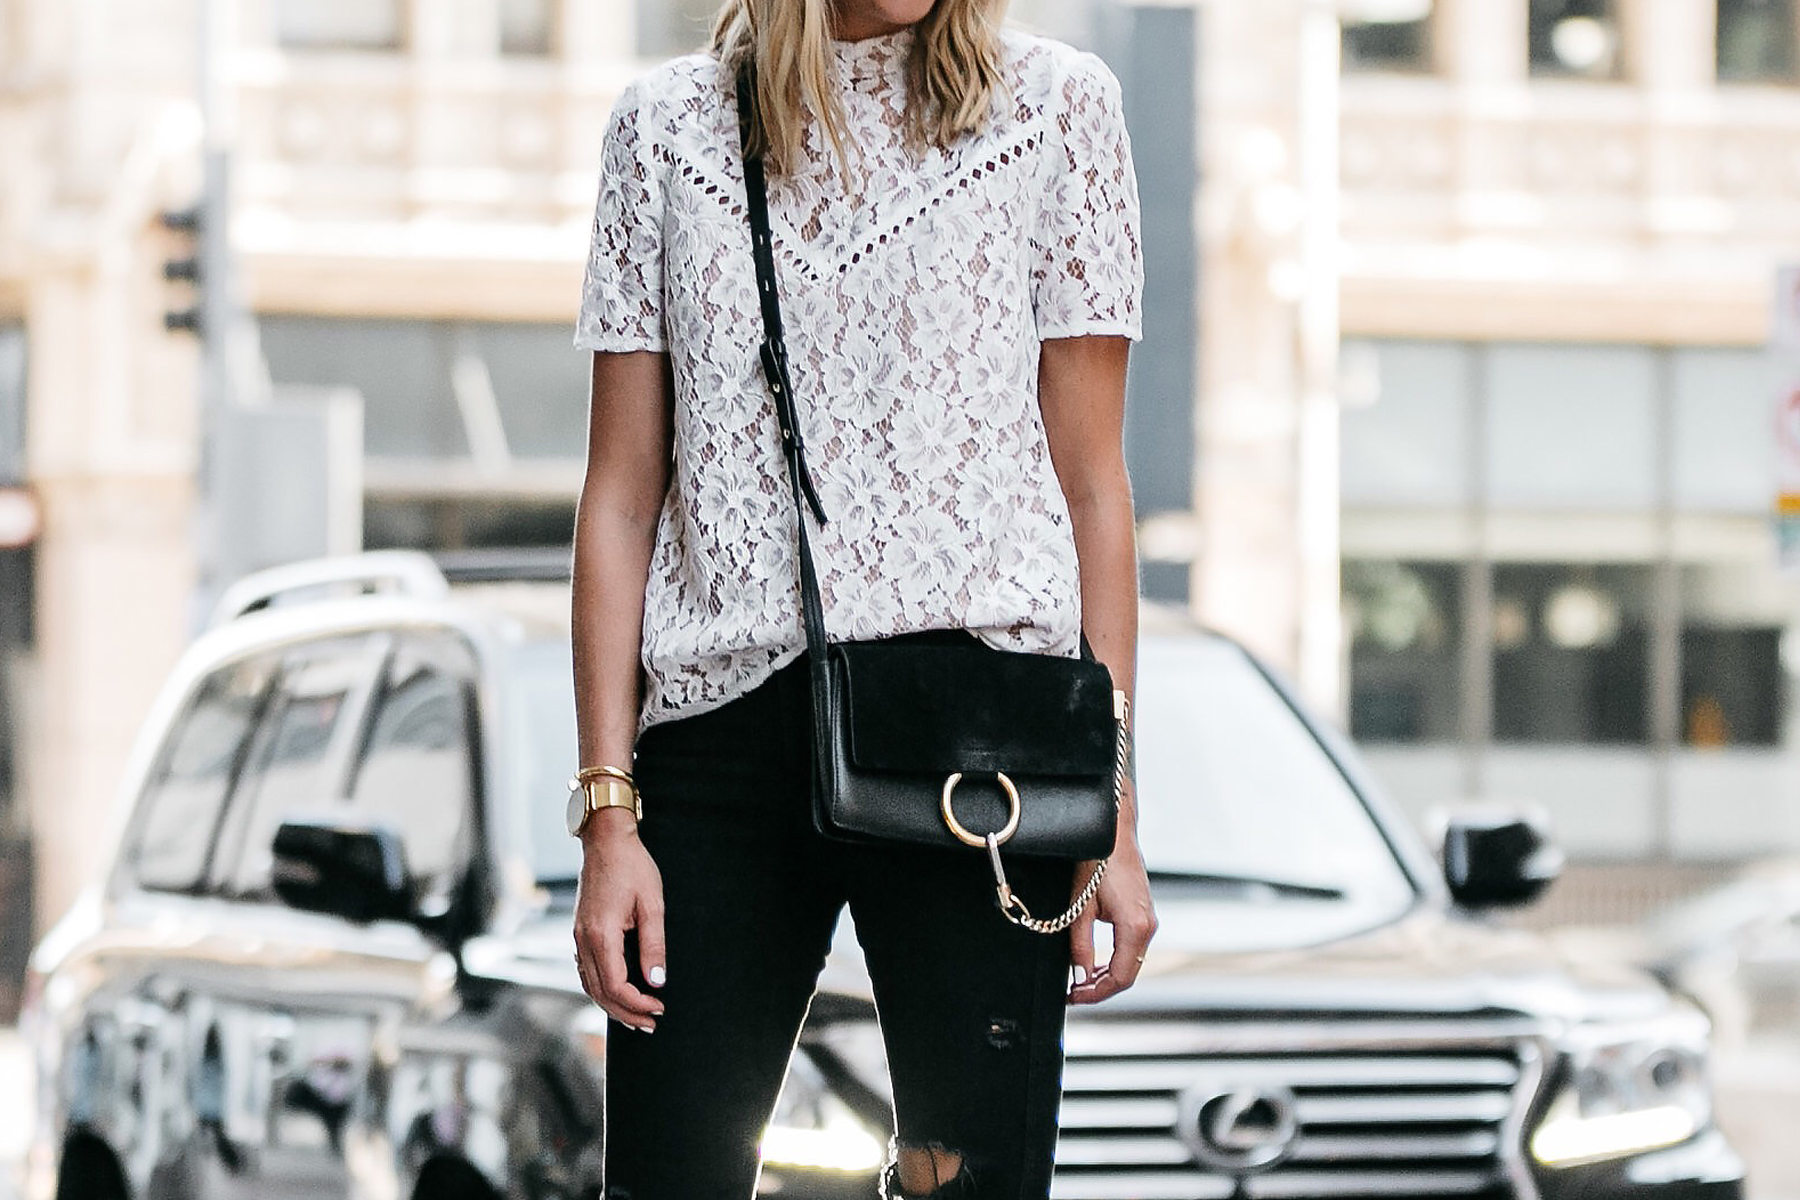 Nordstrom Anniversary Sale White Lace Top Zara Black Ripped Skinny Jeans Outfit Chloe Faye Handbag Fashion Jackson Dallas Blogger Fashion Blogger